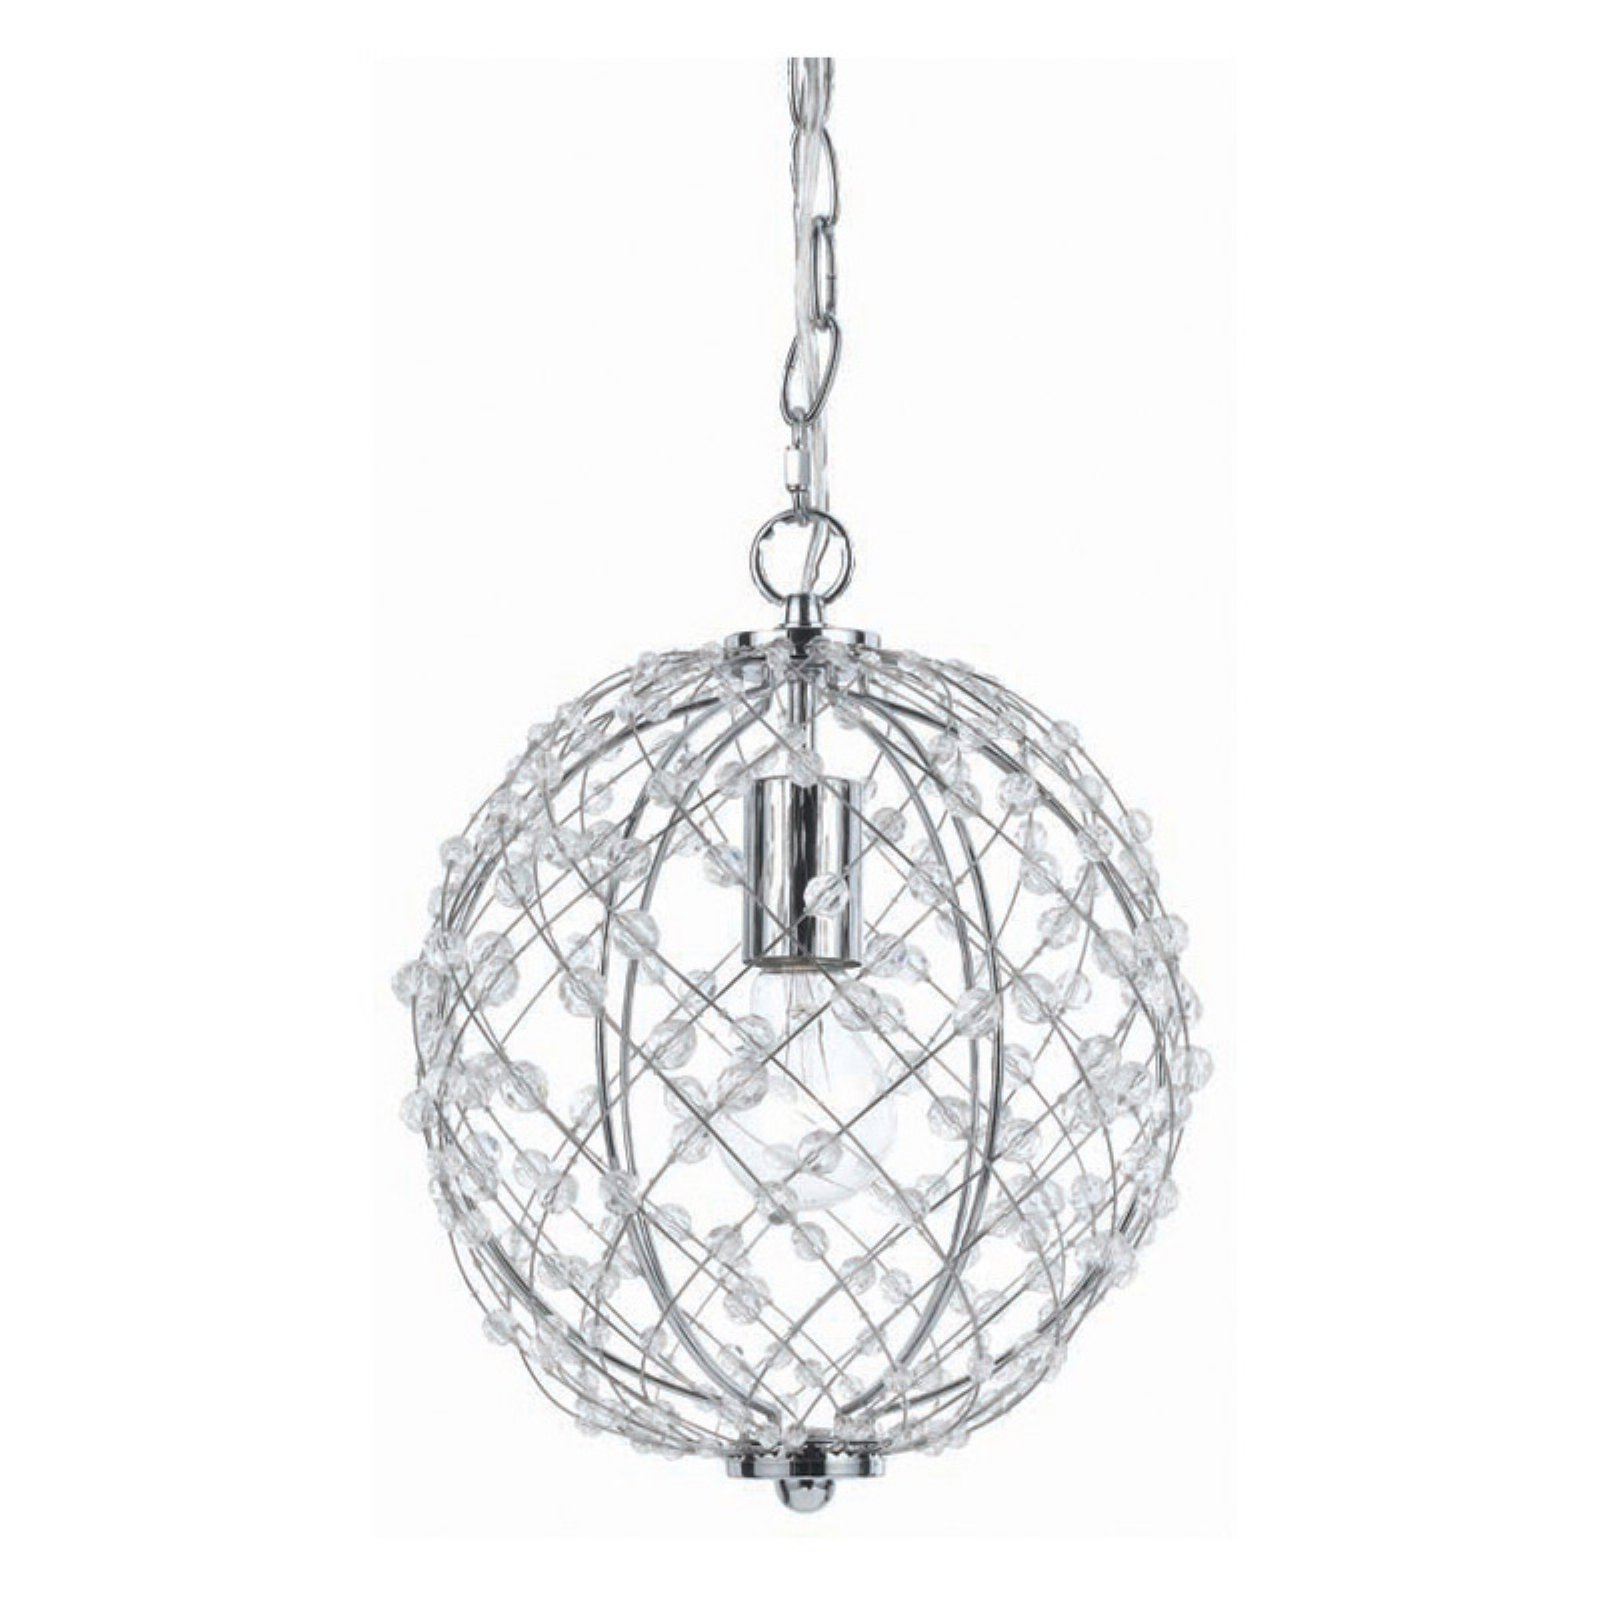 AF Lighting 8284-1H Small Round Silver Web Pendant by AF Lighting